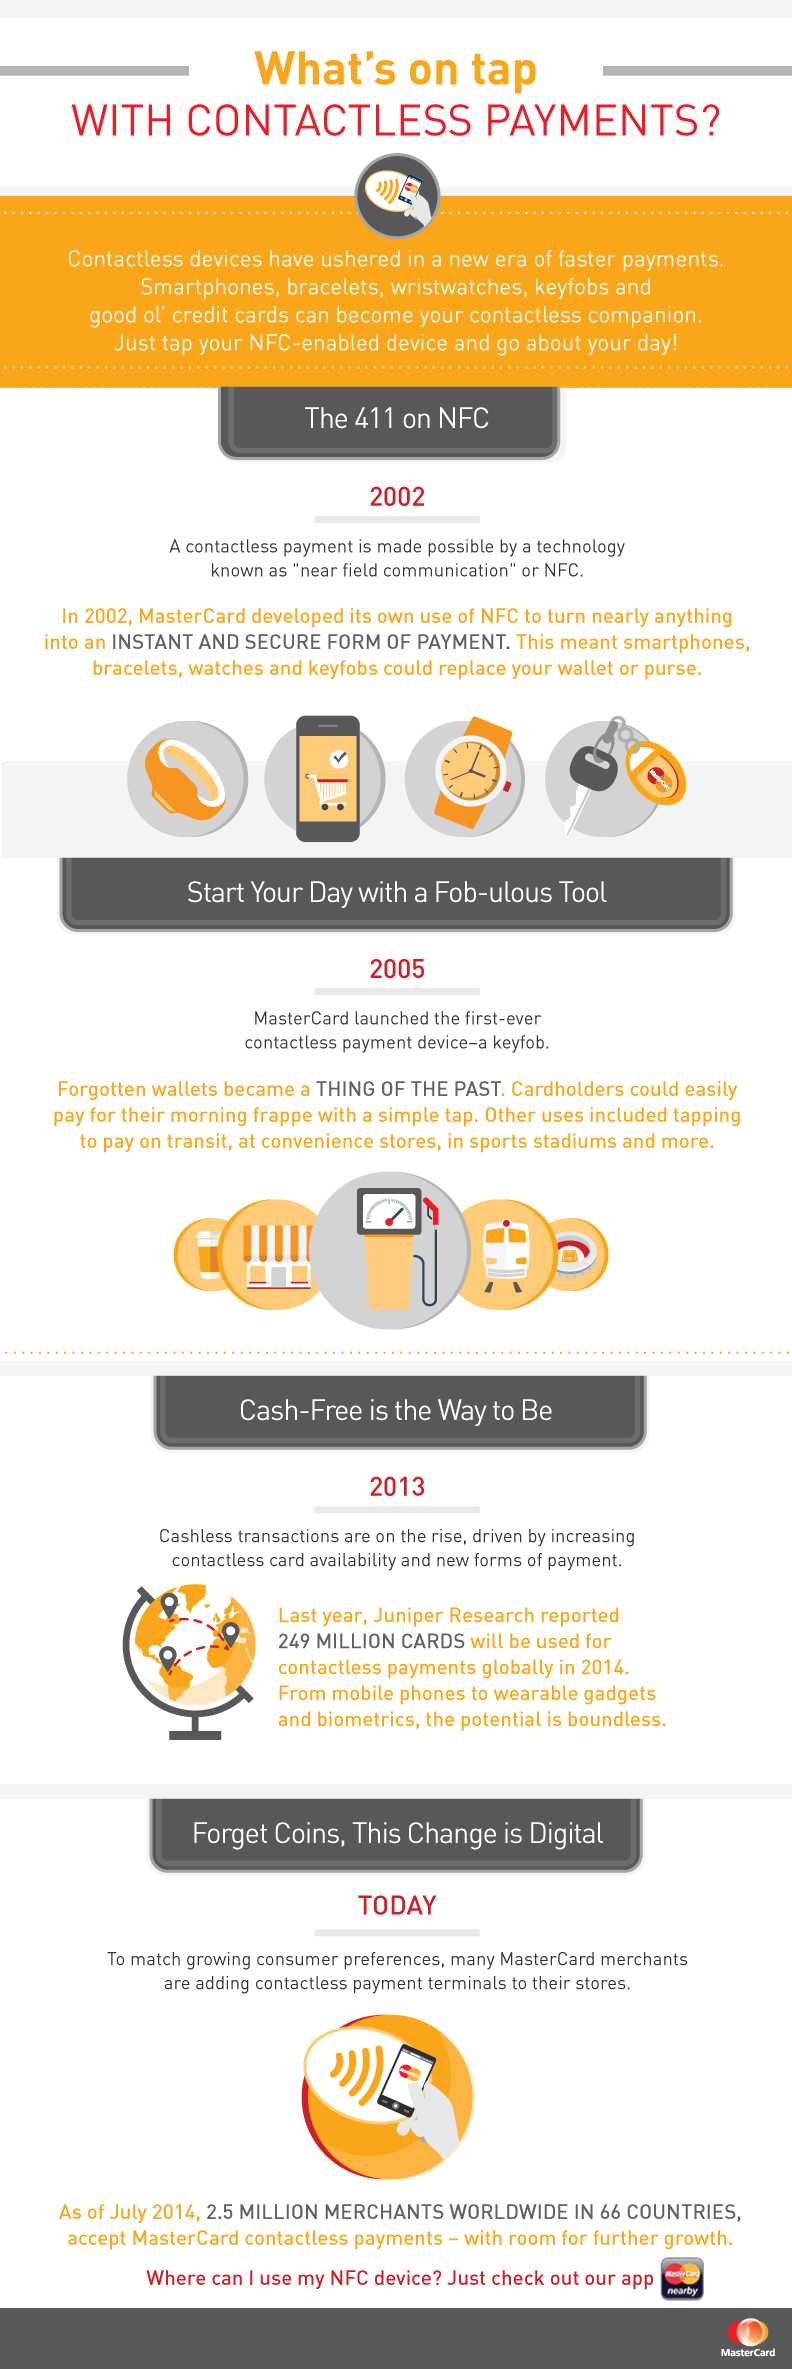 MasterCard Contactless Payment Timeline